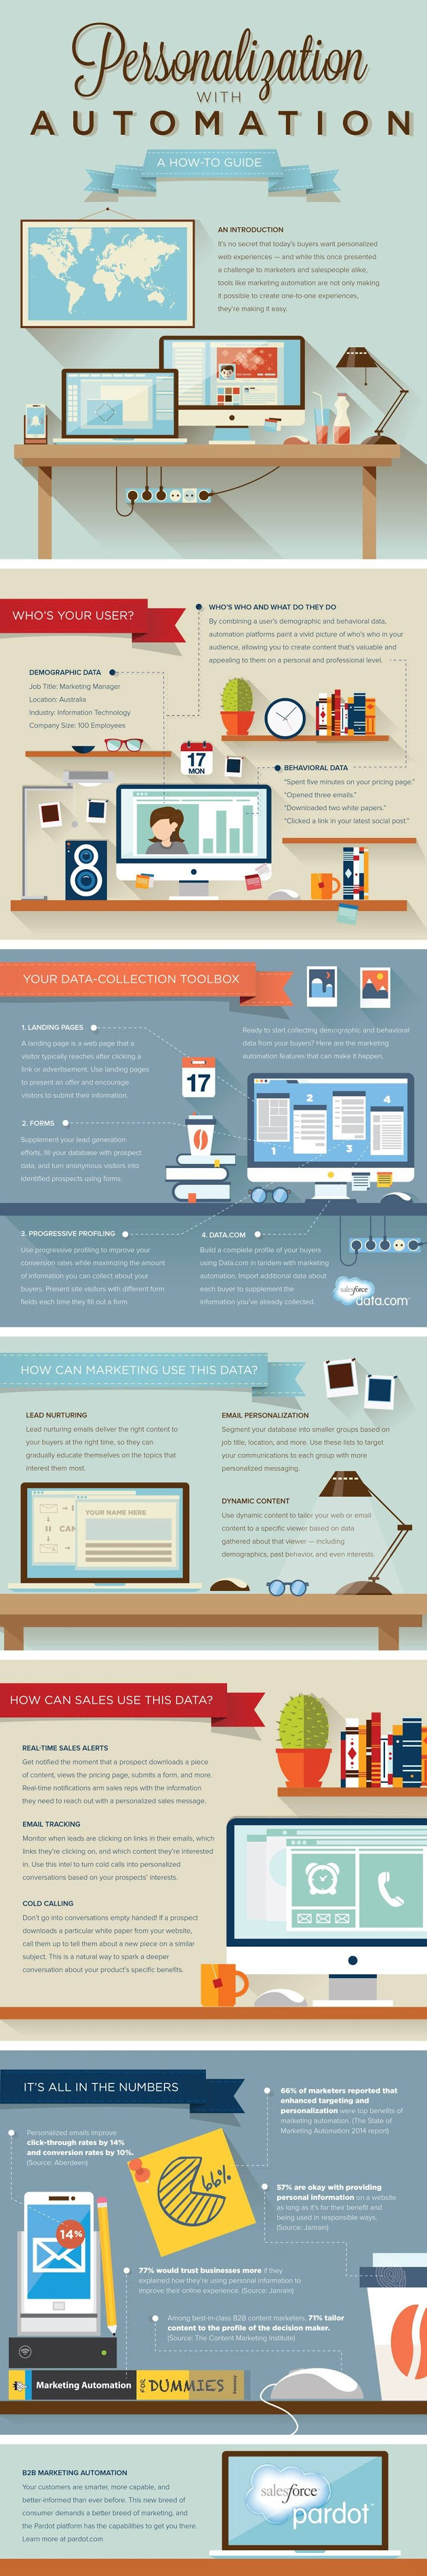 Personalization with Automation #infographic